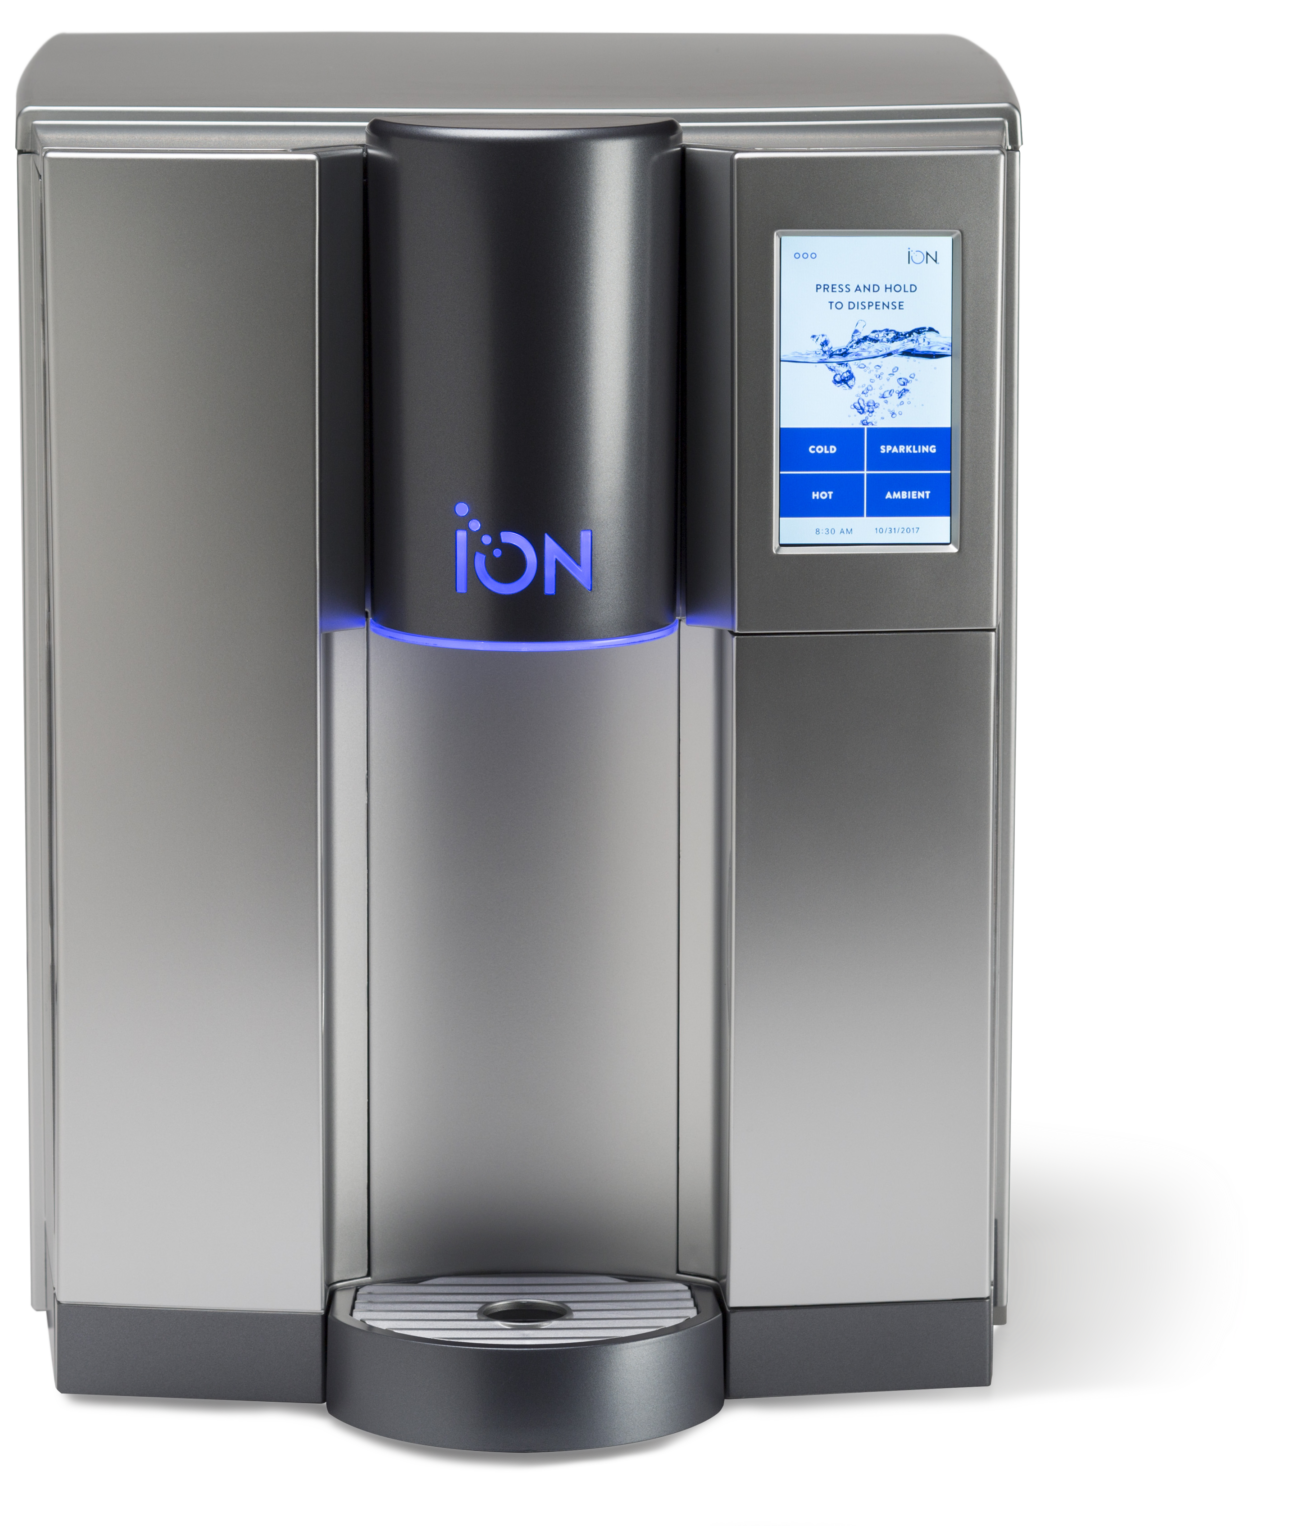 Residential Drinking Water Systems - ClearSoft - iON